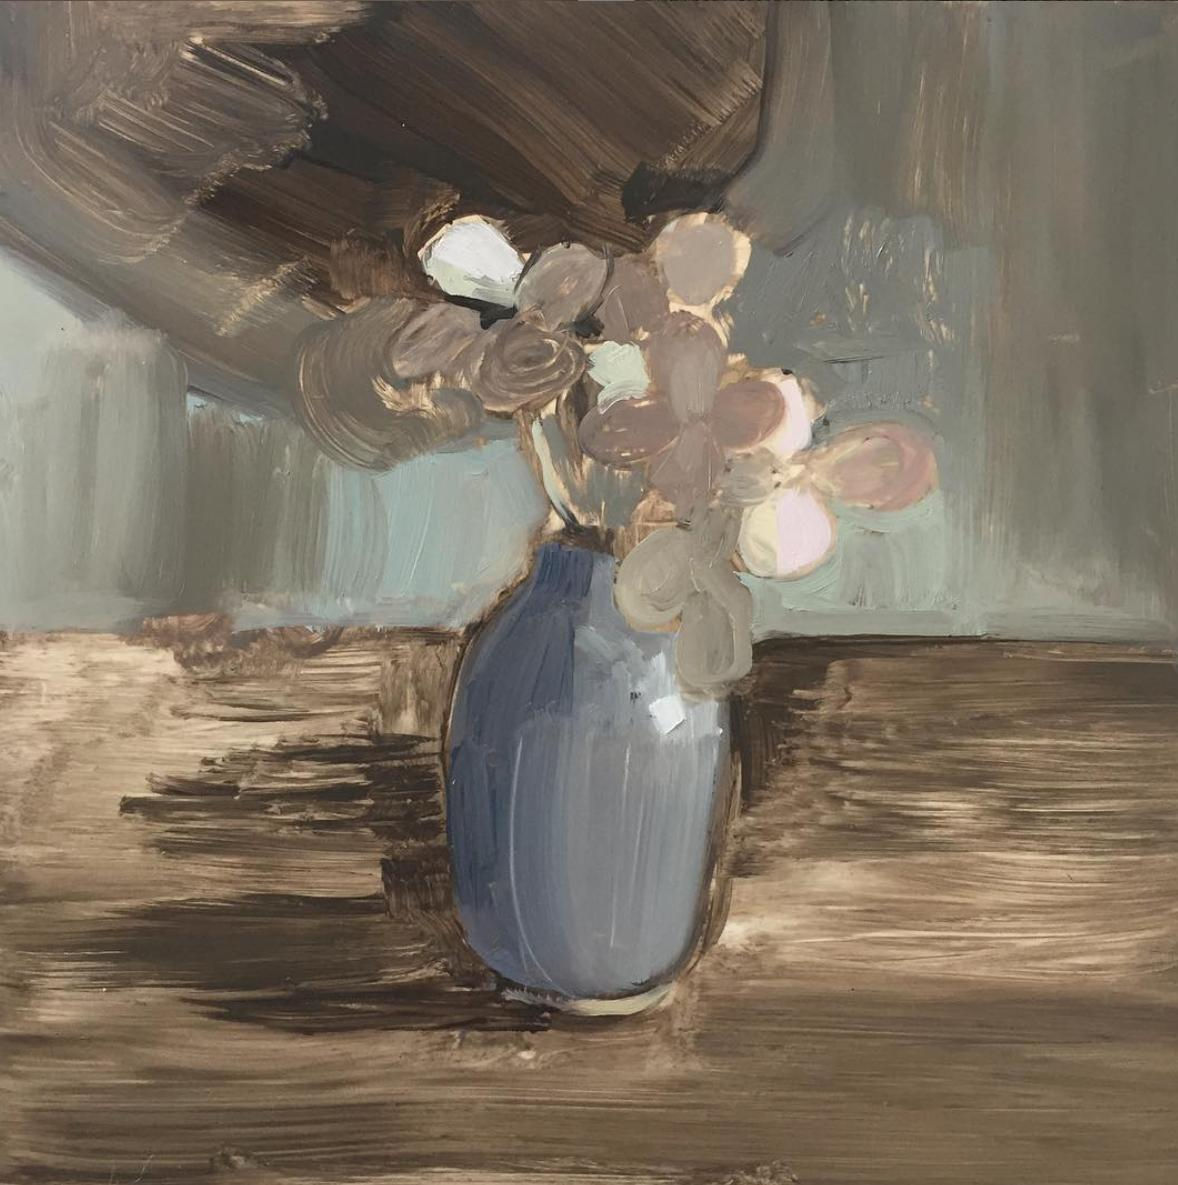 Put &quot;Drawing a #garden of #flowers with a #localartist &quot; on your TO-DO LIST tomorrow, 2:30-3:30pm #saturdayfunday  MEET #artist Briana Corr-Scott and see her amazing new show ON NOW. Here&#39;s another #uplifting #oilpainting from the show!<br>http://pic.twitter.com/ir9mwXD8Gz